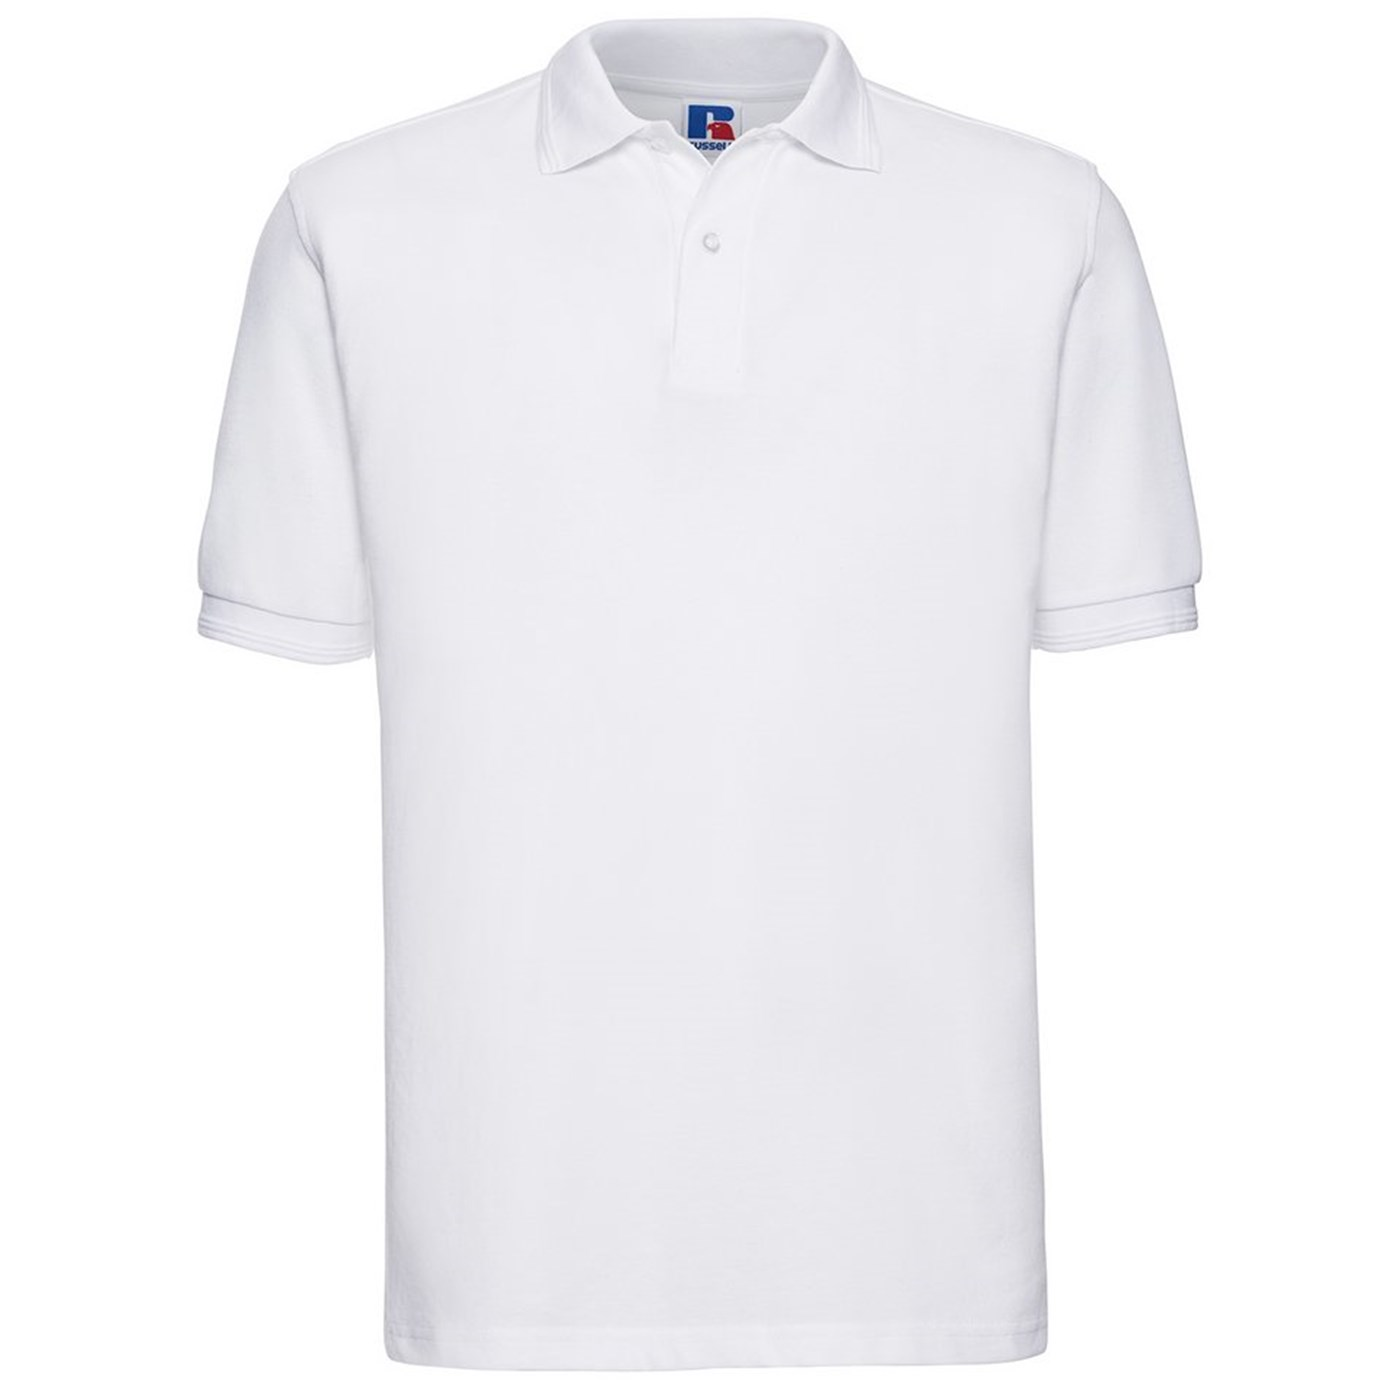 071a1b24 Russell Adult's Hard Wearing Polo Shirt J599M